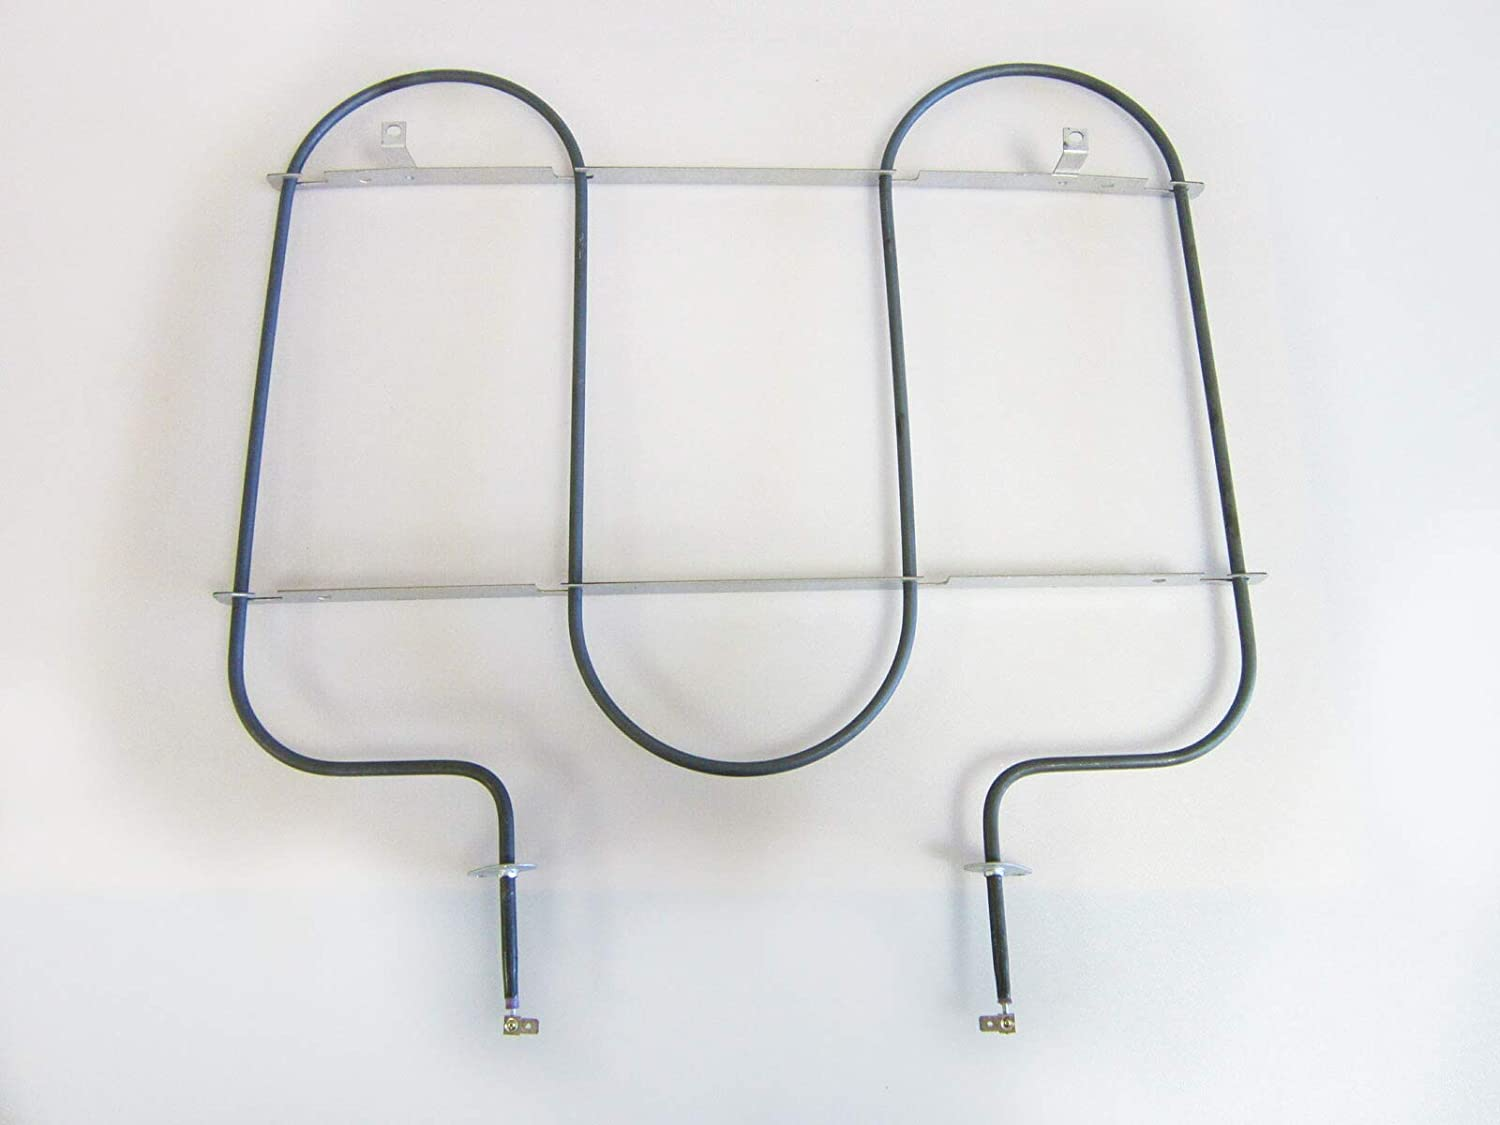 ZAITOE Range Oven Broil Element for Whirlpool, Sears, Ap3744403, PS898602, 9757340, W10856603